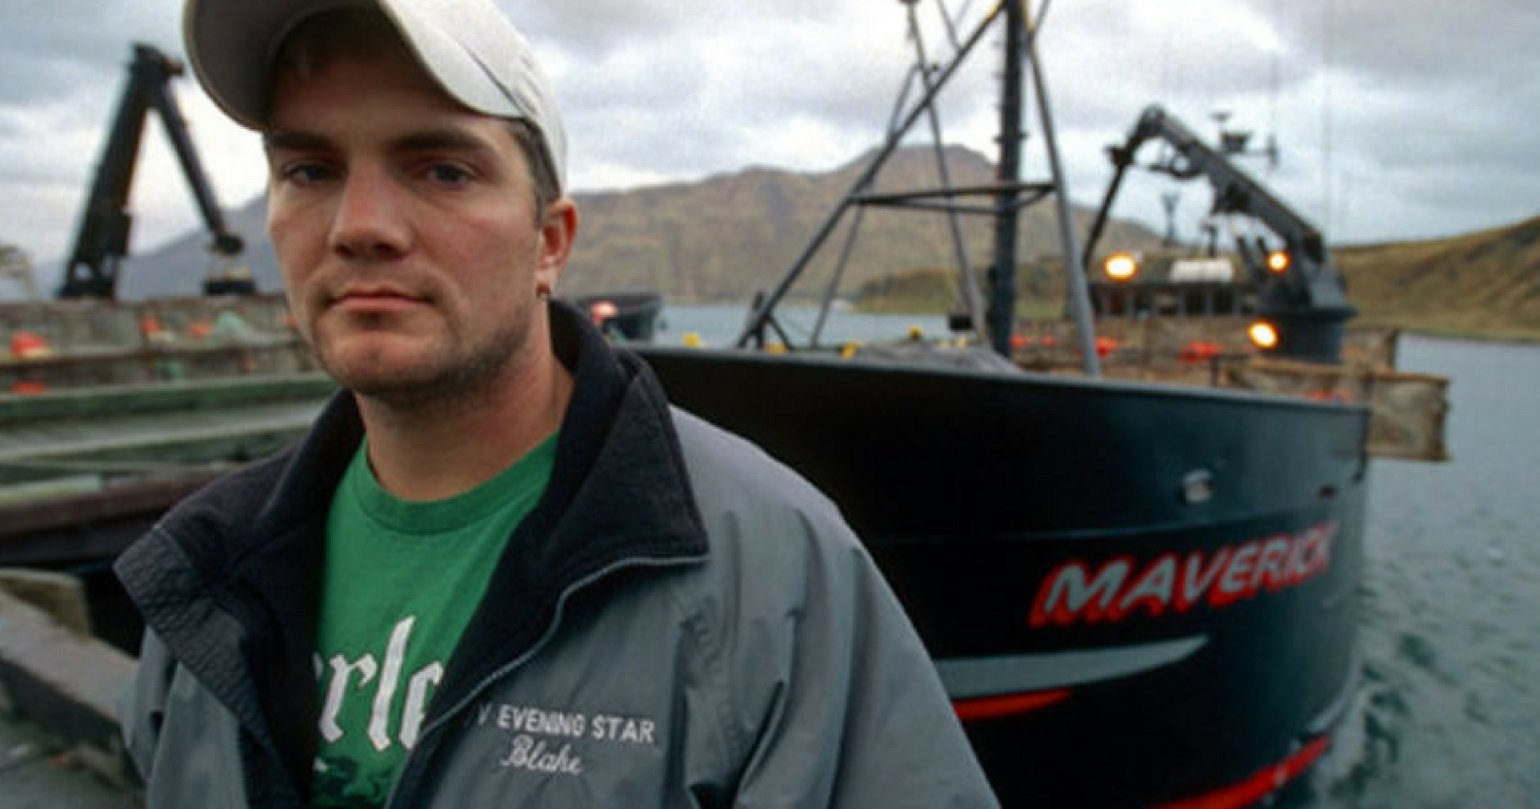 Deadliest Catch star Blake Painter has died at 38